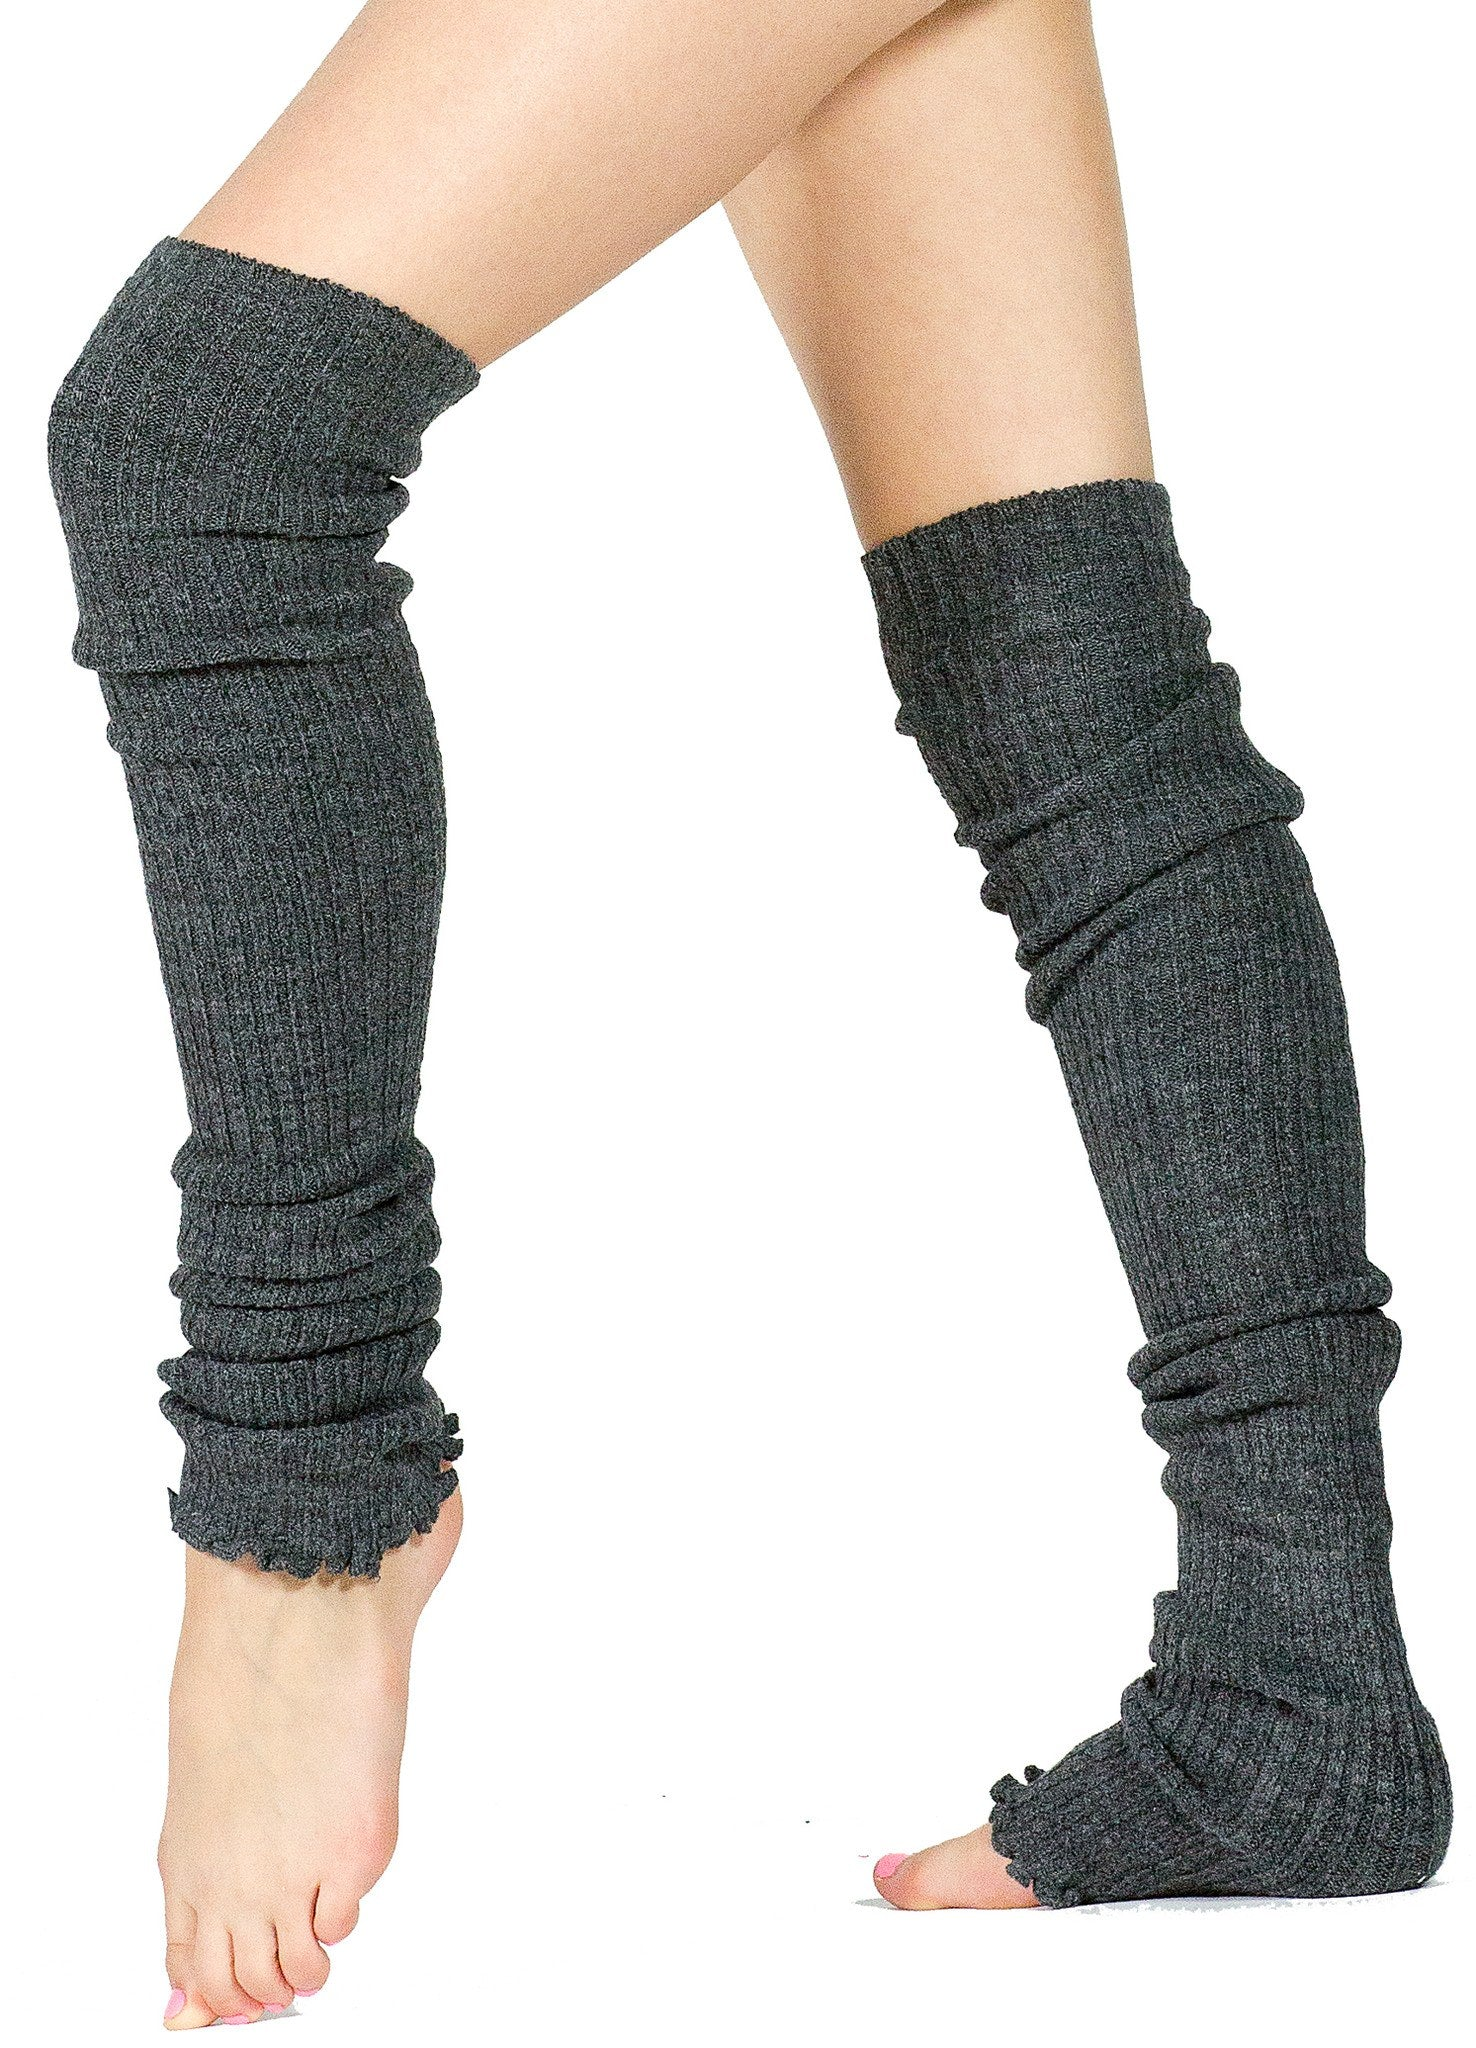 Leg Warmers Thigh High Stretch Knit Ribbed 28 Inch Leg Warmers High Quality KD dance Made In USA @KDdanceNewYork #MadeInUSA - 2